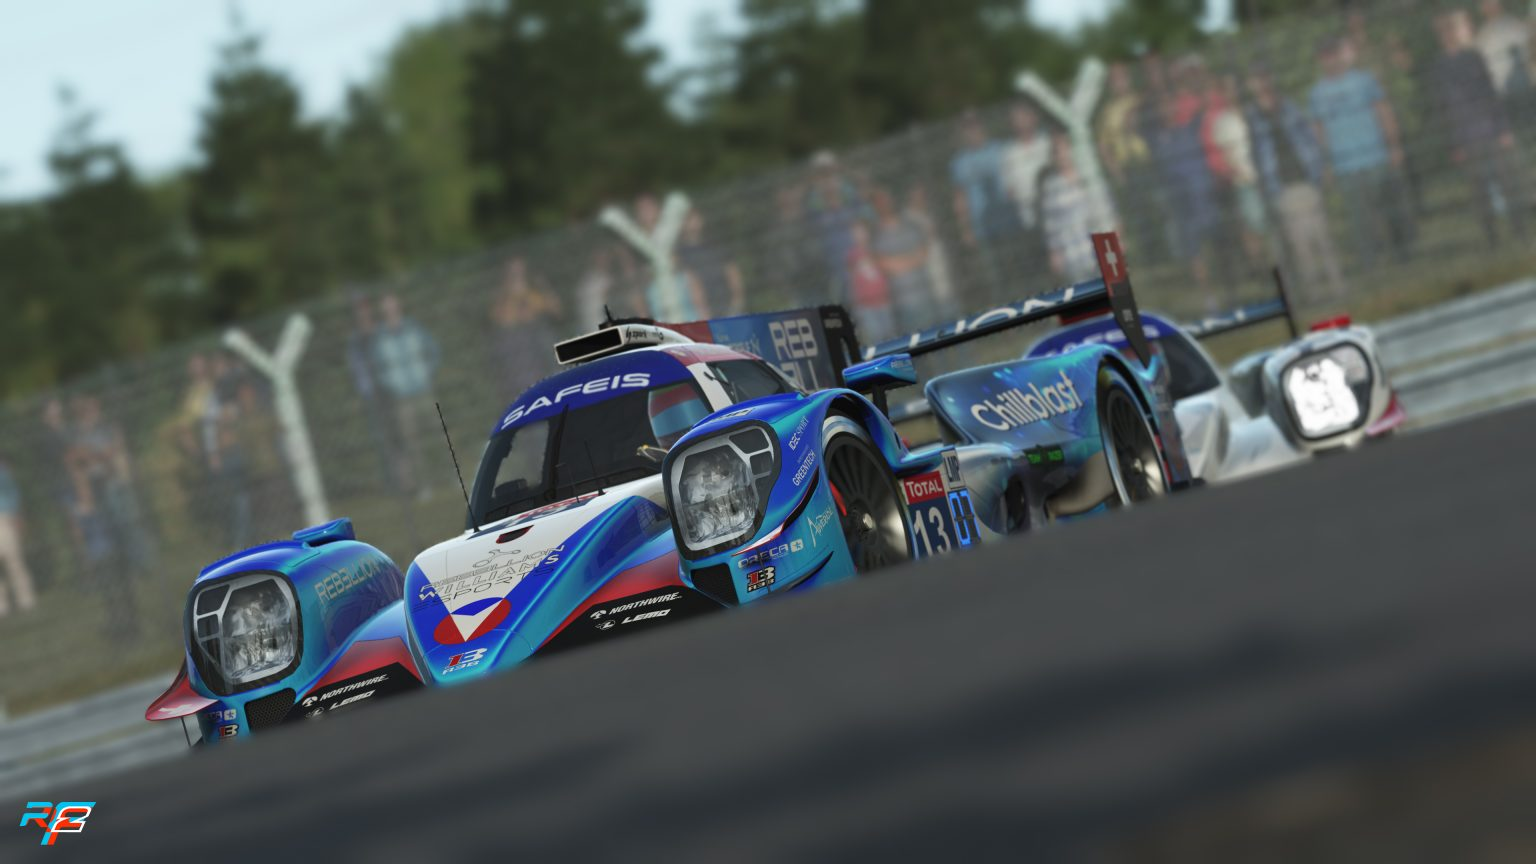 rFactor 2: Behind the scenes for Virtual Le Mans 24 Hours